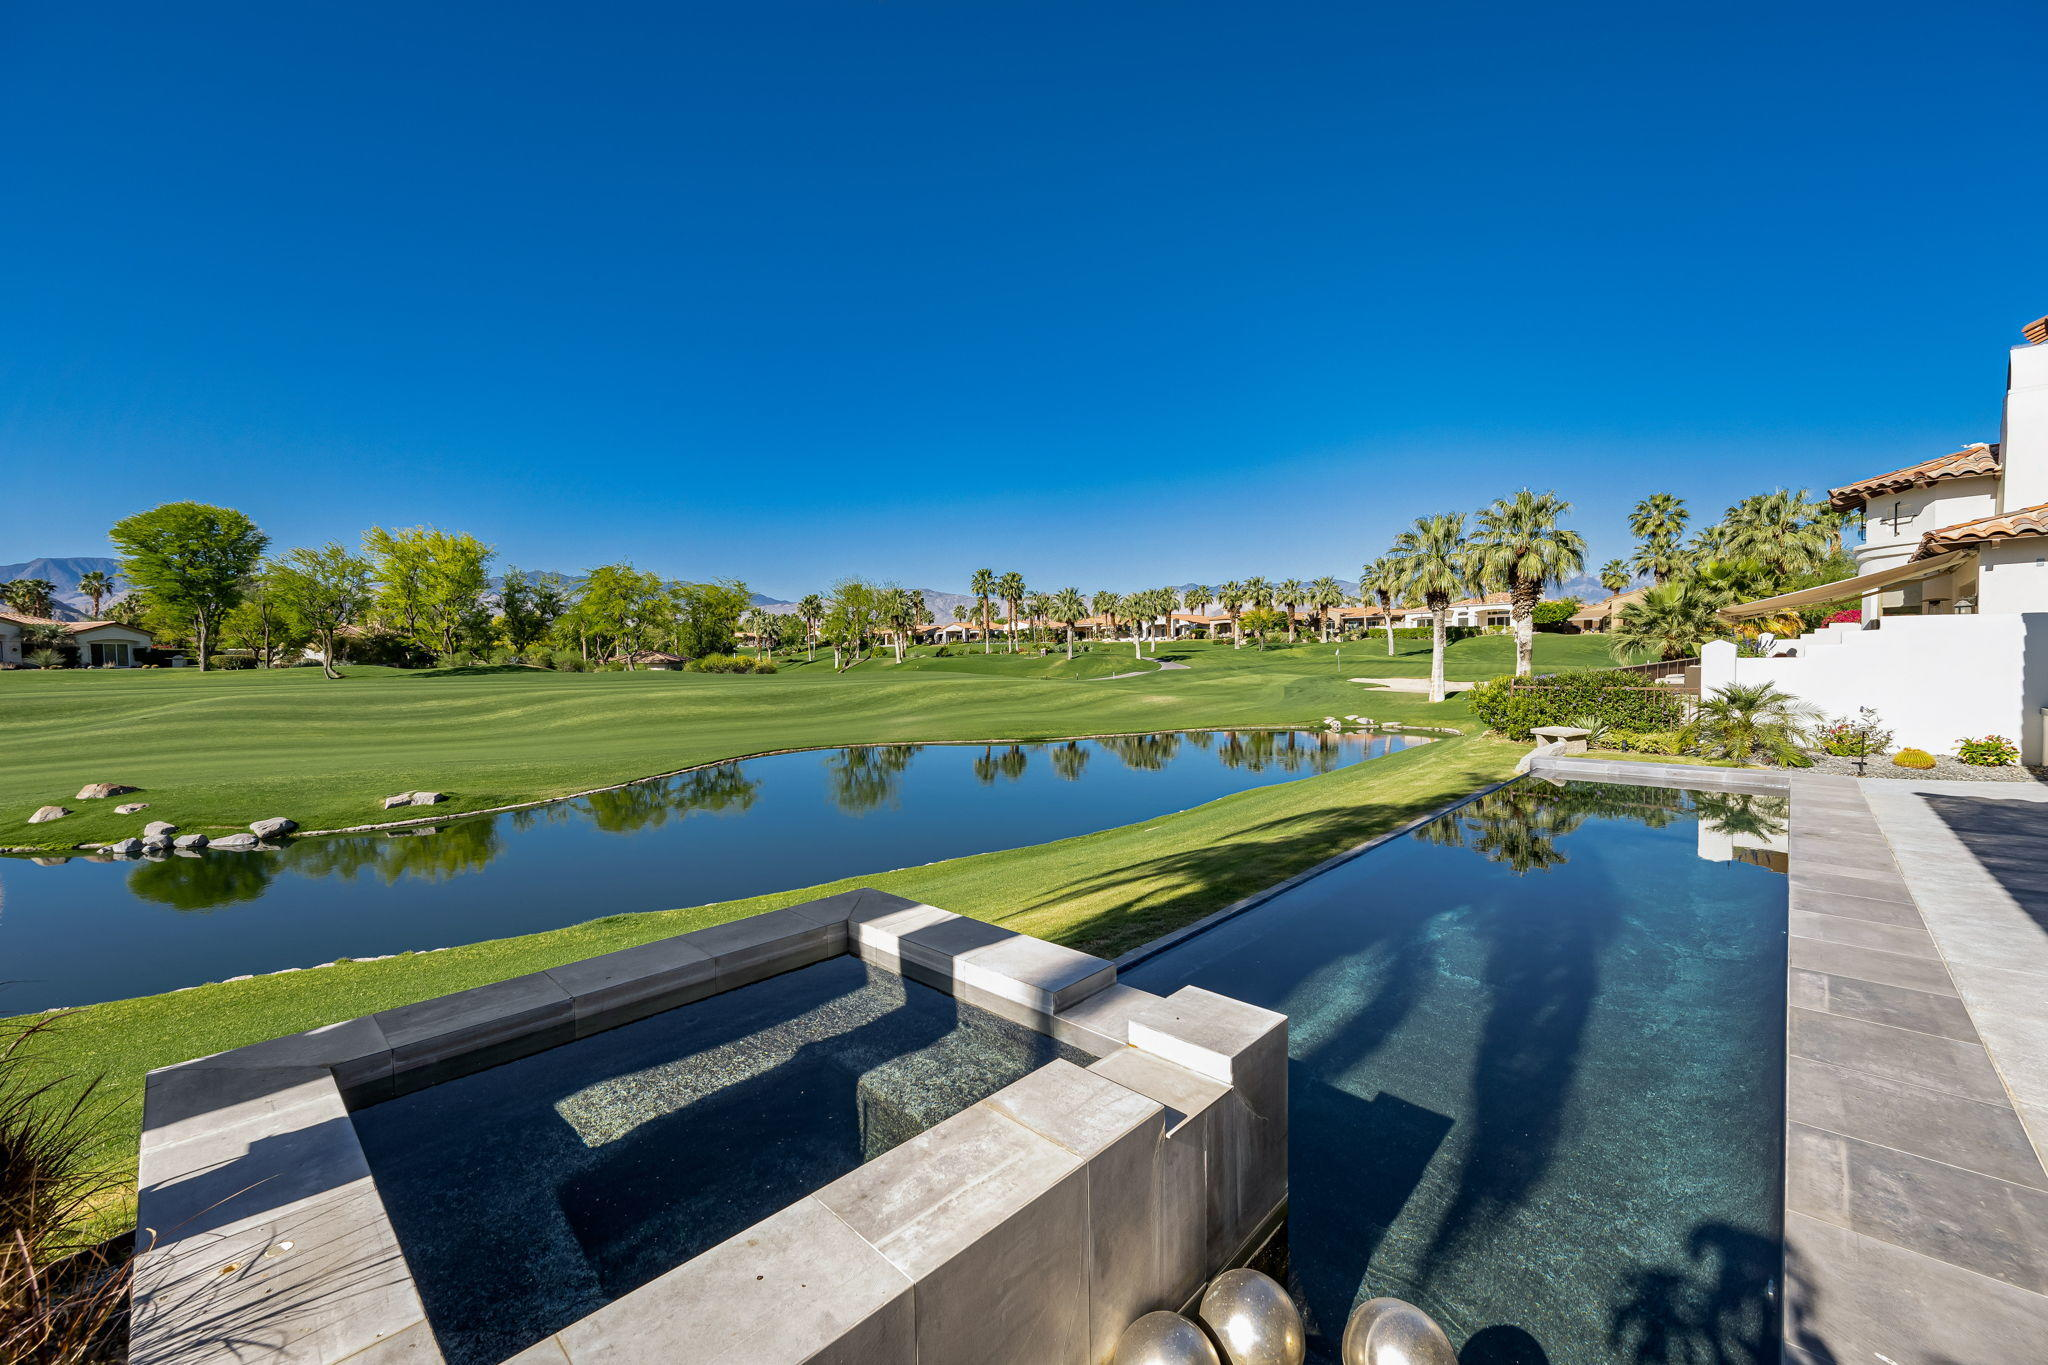 South Contemporary Pool Home! South...lake & course views! Highly upgraded interior and exterior. Located on Arroyo #15 – in center of the club, near Clubhouses. Infinity pool/spa overlooks lake – color themes LED lights in pool/spa. Expansive back patio has sweeping private south lake views. Open floor plan – living, dining, wet bar, family room all look out to the great views. New luxury vinyl plank flooring throughout + high-end carpeting in bedrooms. Kitchen features Sub Zero & Wolf stainless appliances, 78-bottle wine refrigerator & separate ice maker. Master ensuite is a luxurious retreat w/2 closets - one is spacious walk-in +built-ins. Newly remodeled master bathroom features leathered slab quartzite countertops & shower, new sinks/plumbing, Hansgrohe faucets & shower system and blue glass shower enclosure. Master bathroom also features spa tub. Two well-appointed guest rooms are en suite and offer great privacy for your guests (one is currently used as an office). Attached Casita is just off the courtyard – 1 bedroom + ensuite bathroom. Individual laundry room. Landscaping newly redesigned to include pavers, faux turf & new plants in courtyard/front yard/driveway. Attached 2 car + golf cart garage. Golf or Club membership available!